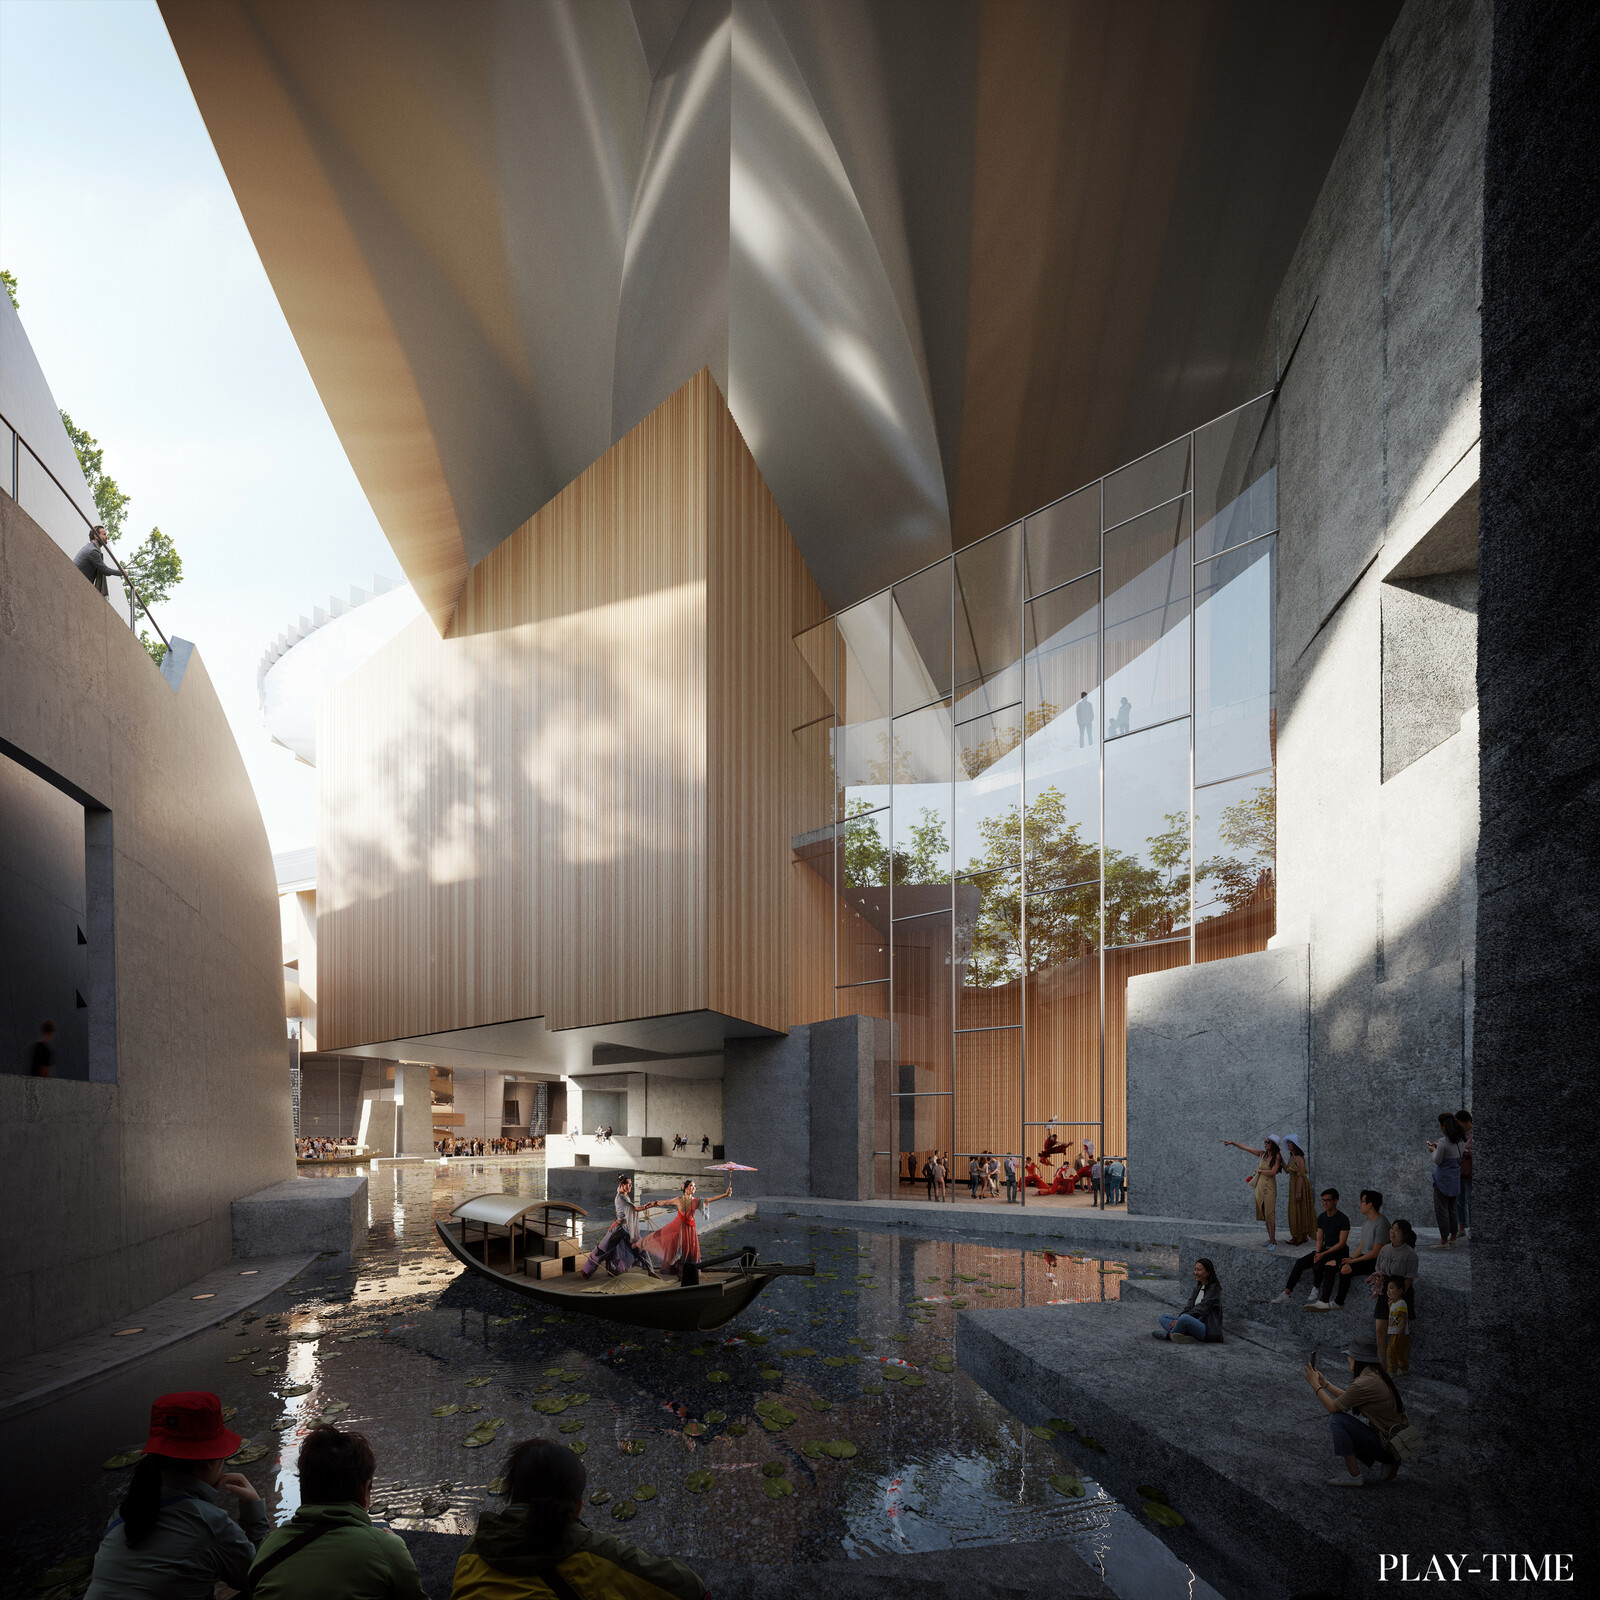 Performance center in Shenzen designed by EMBT Architects. Images by Play-time